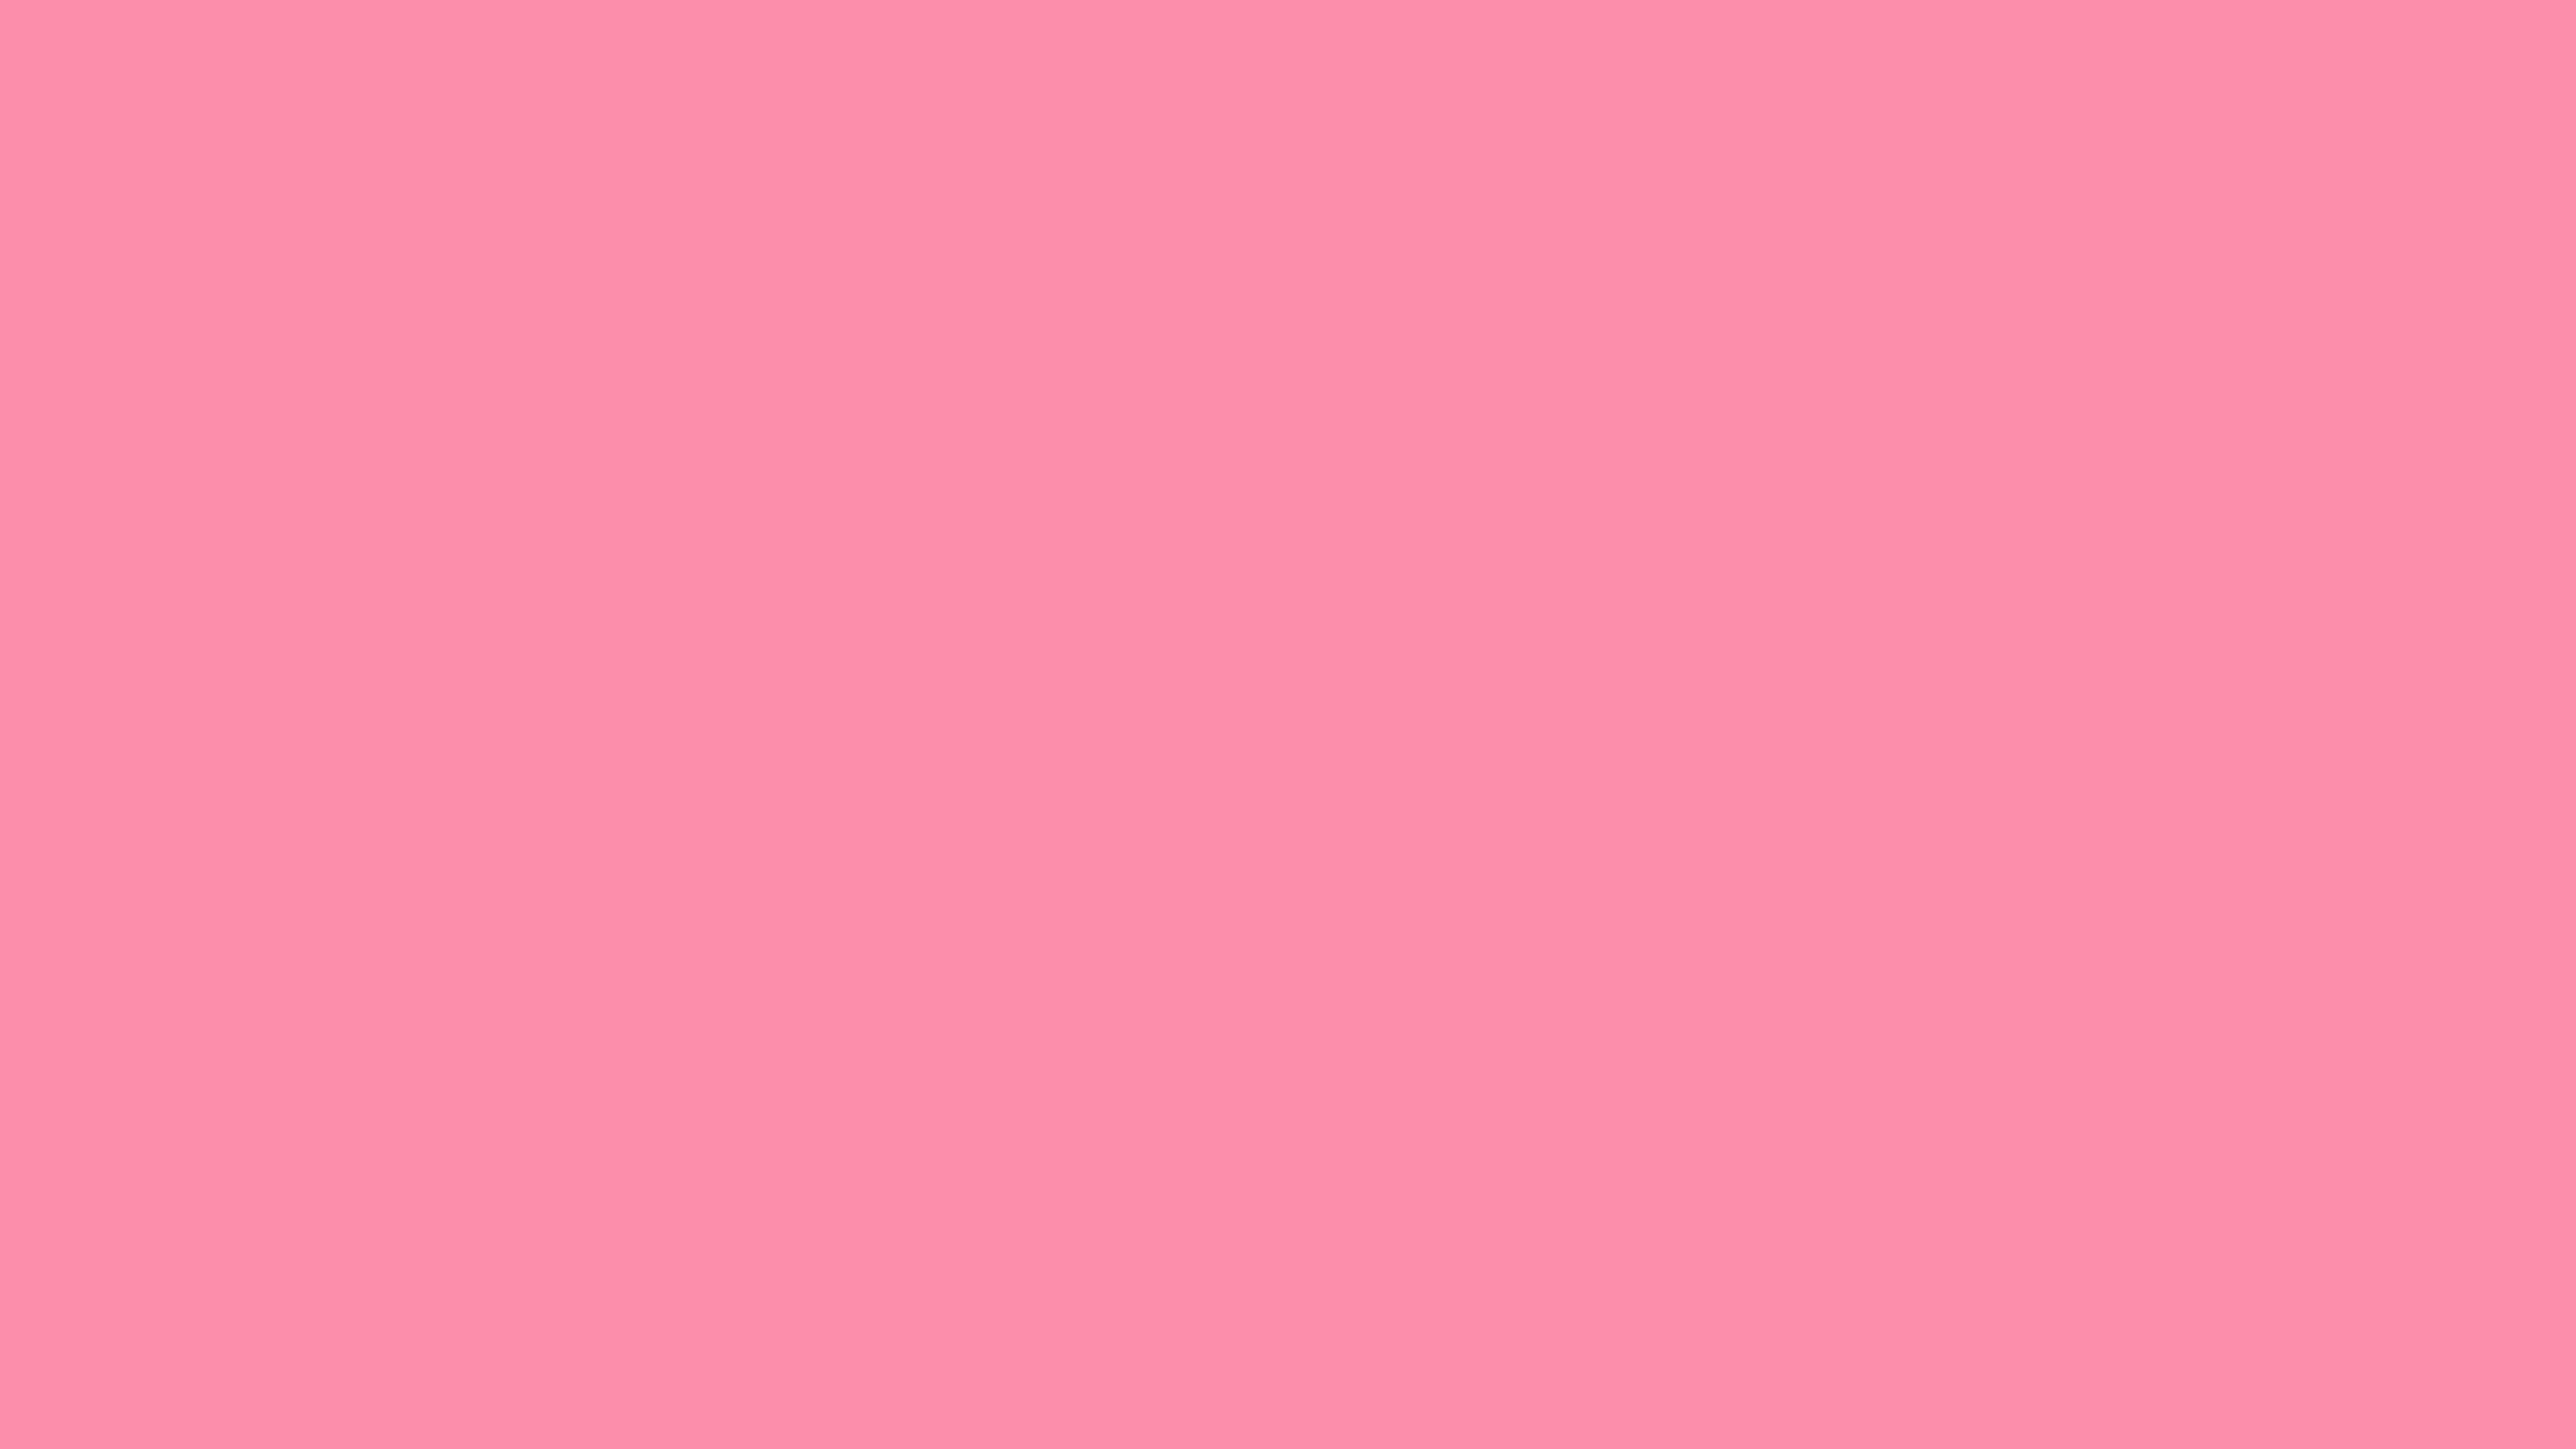 5120x2880 Flamingo Pink Solid Color Background